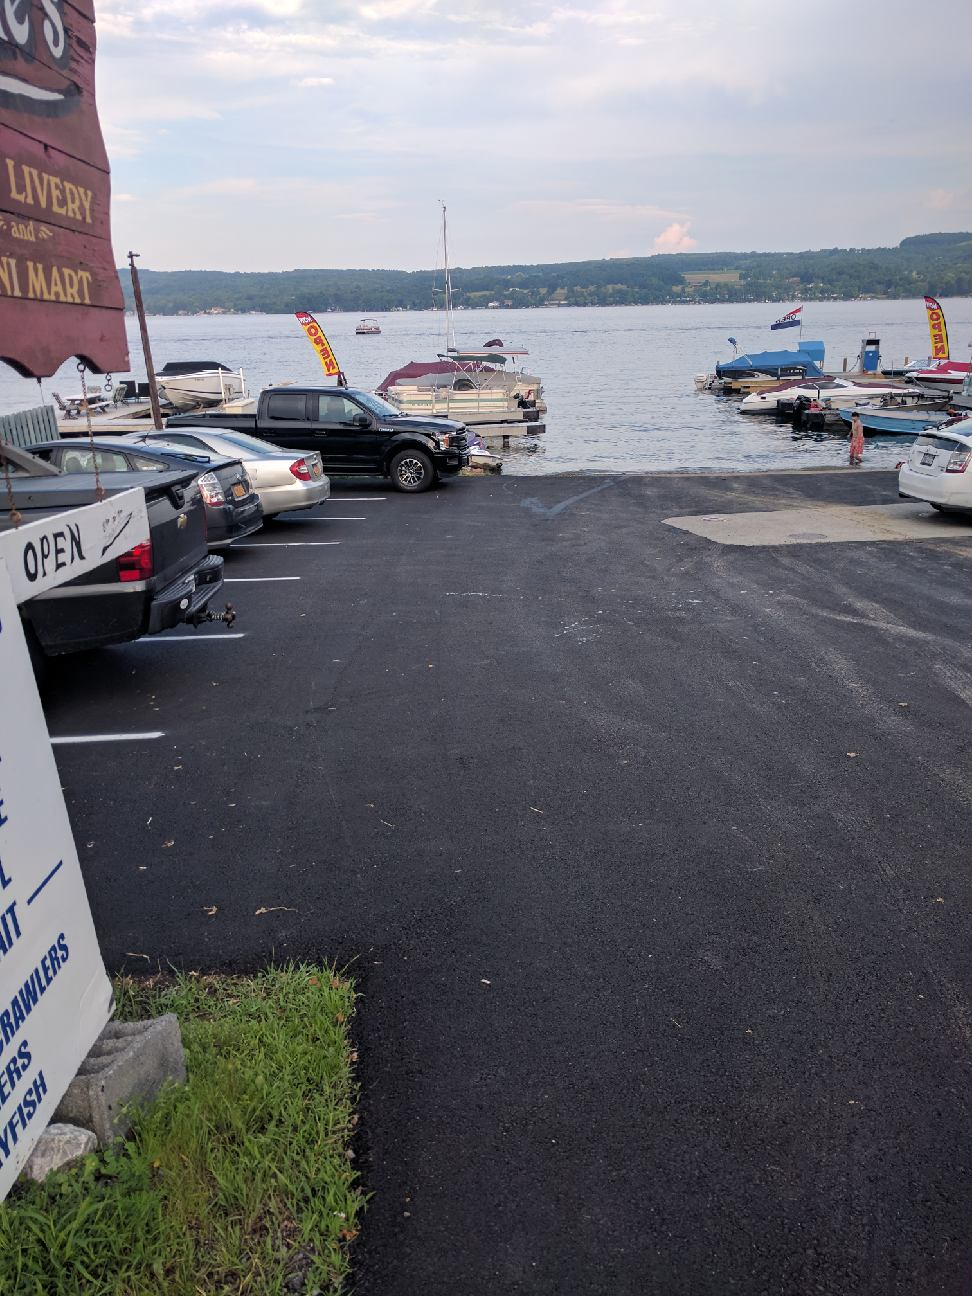 The boat launch at Jake's Livery. Details in above press release.